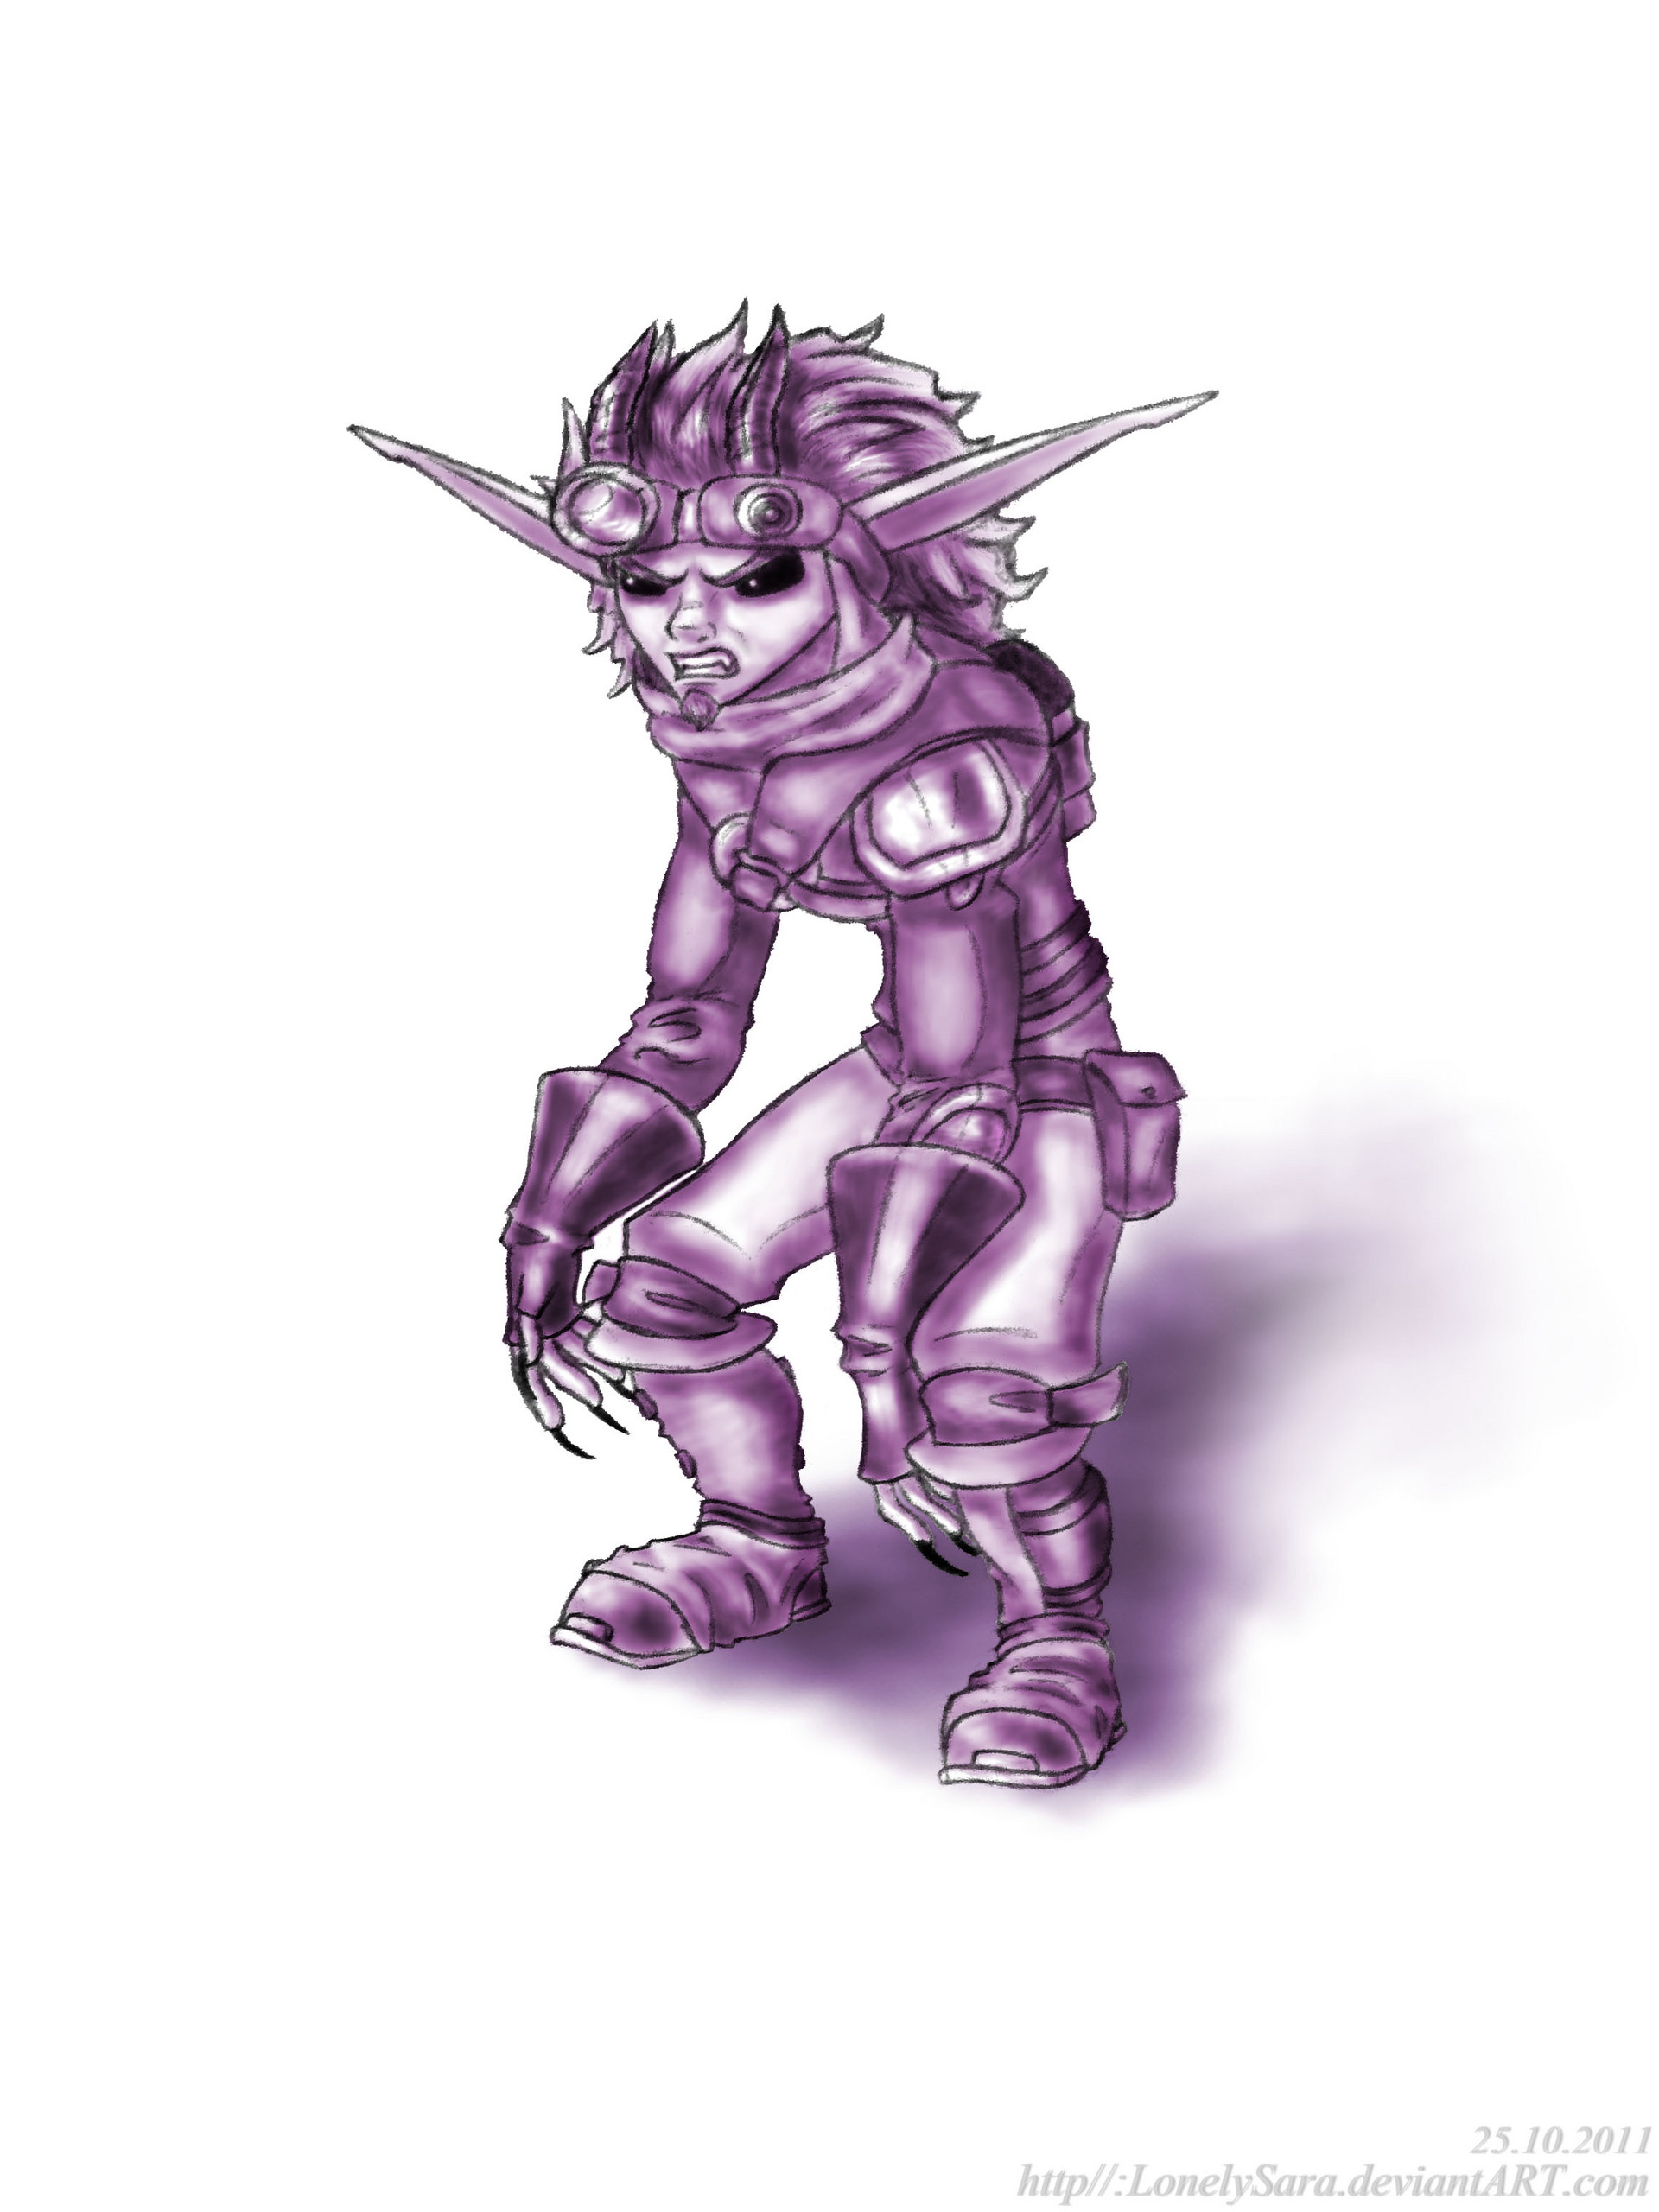 Jak And Daxter Images Dark Jak Pose Hd Wallpaper And Background Photos